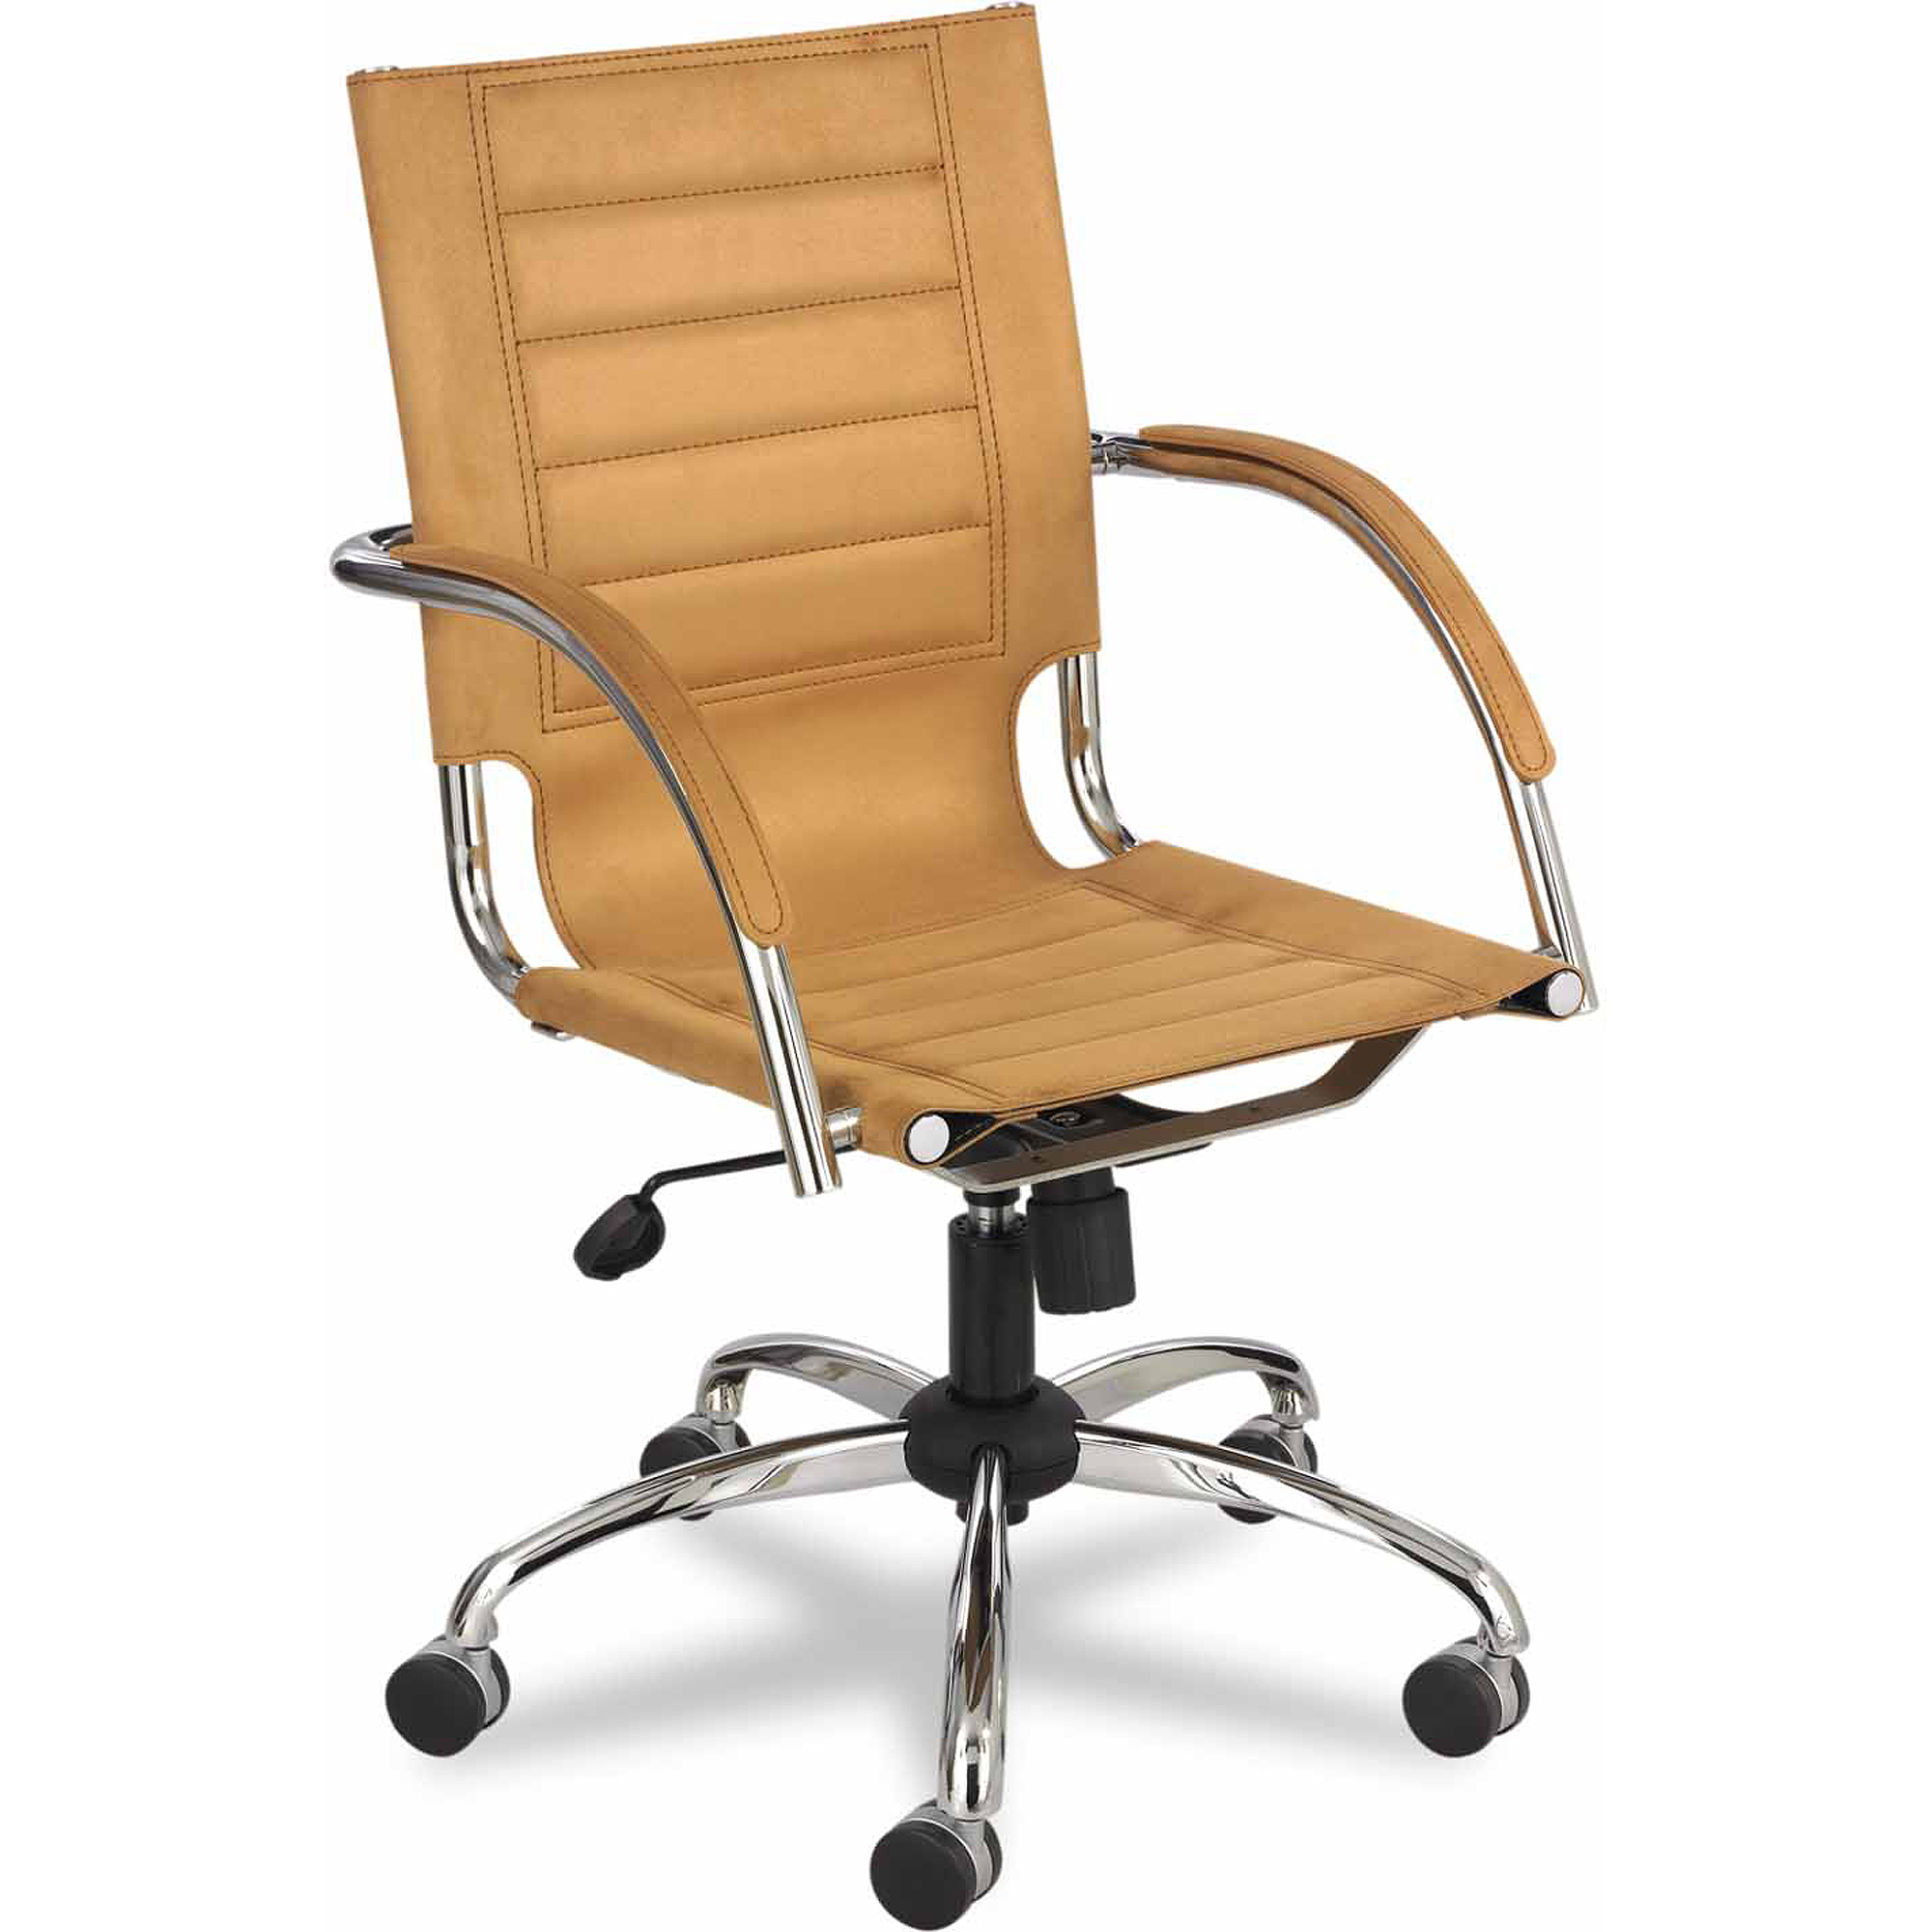 Safco Flaunt Series Mid-Back Manager's Chair